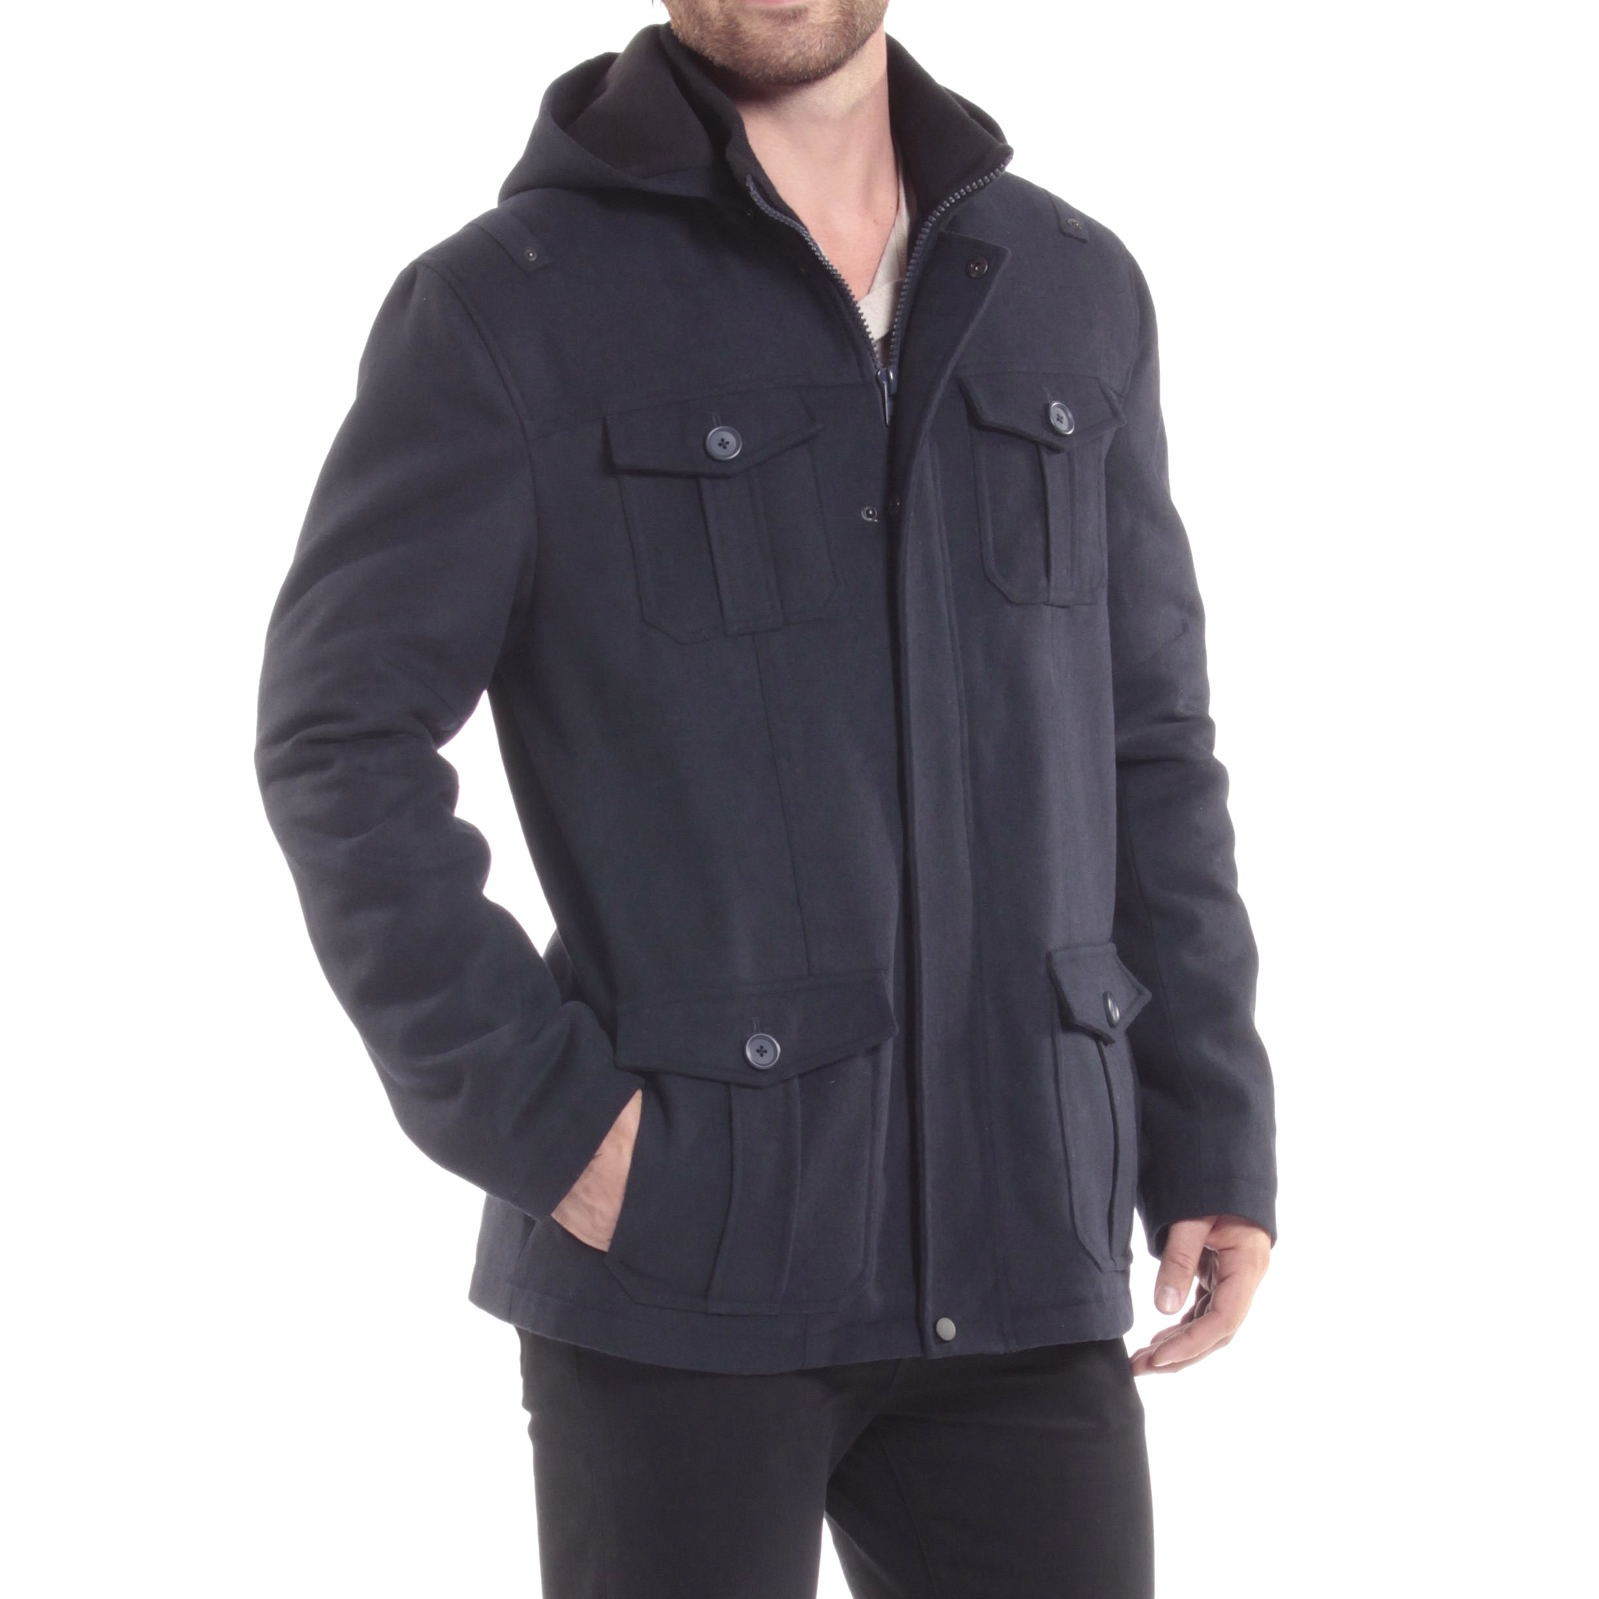 Alpine-Swiss-Noah-Mens-Wool-Coat-Parka-with-Removable-Hood-Jacket-Cargo-Pockets thumbnail 45